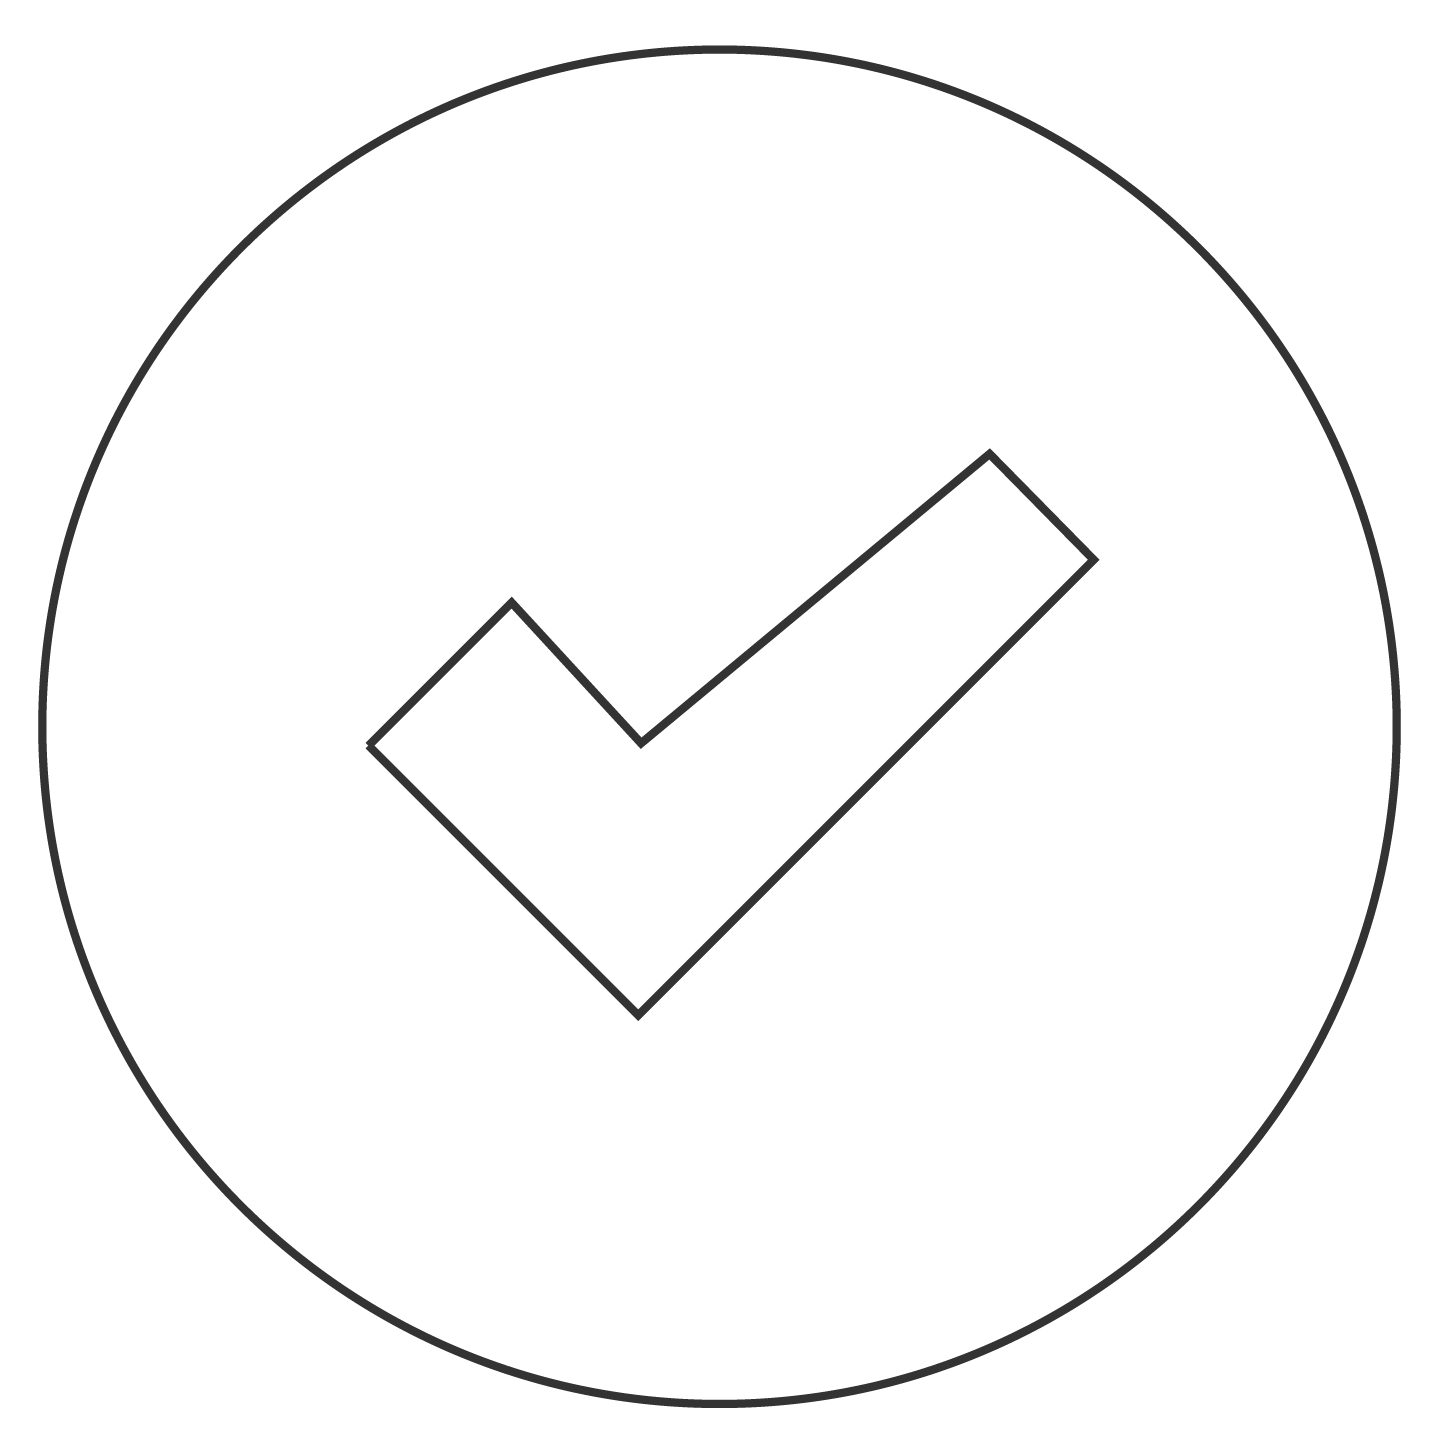 Benefits-Page-Icons-Black-03.png